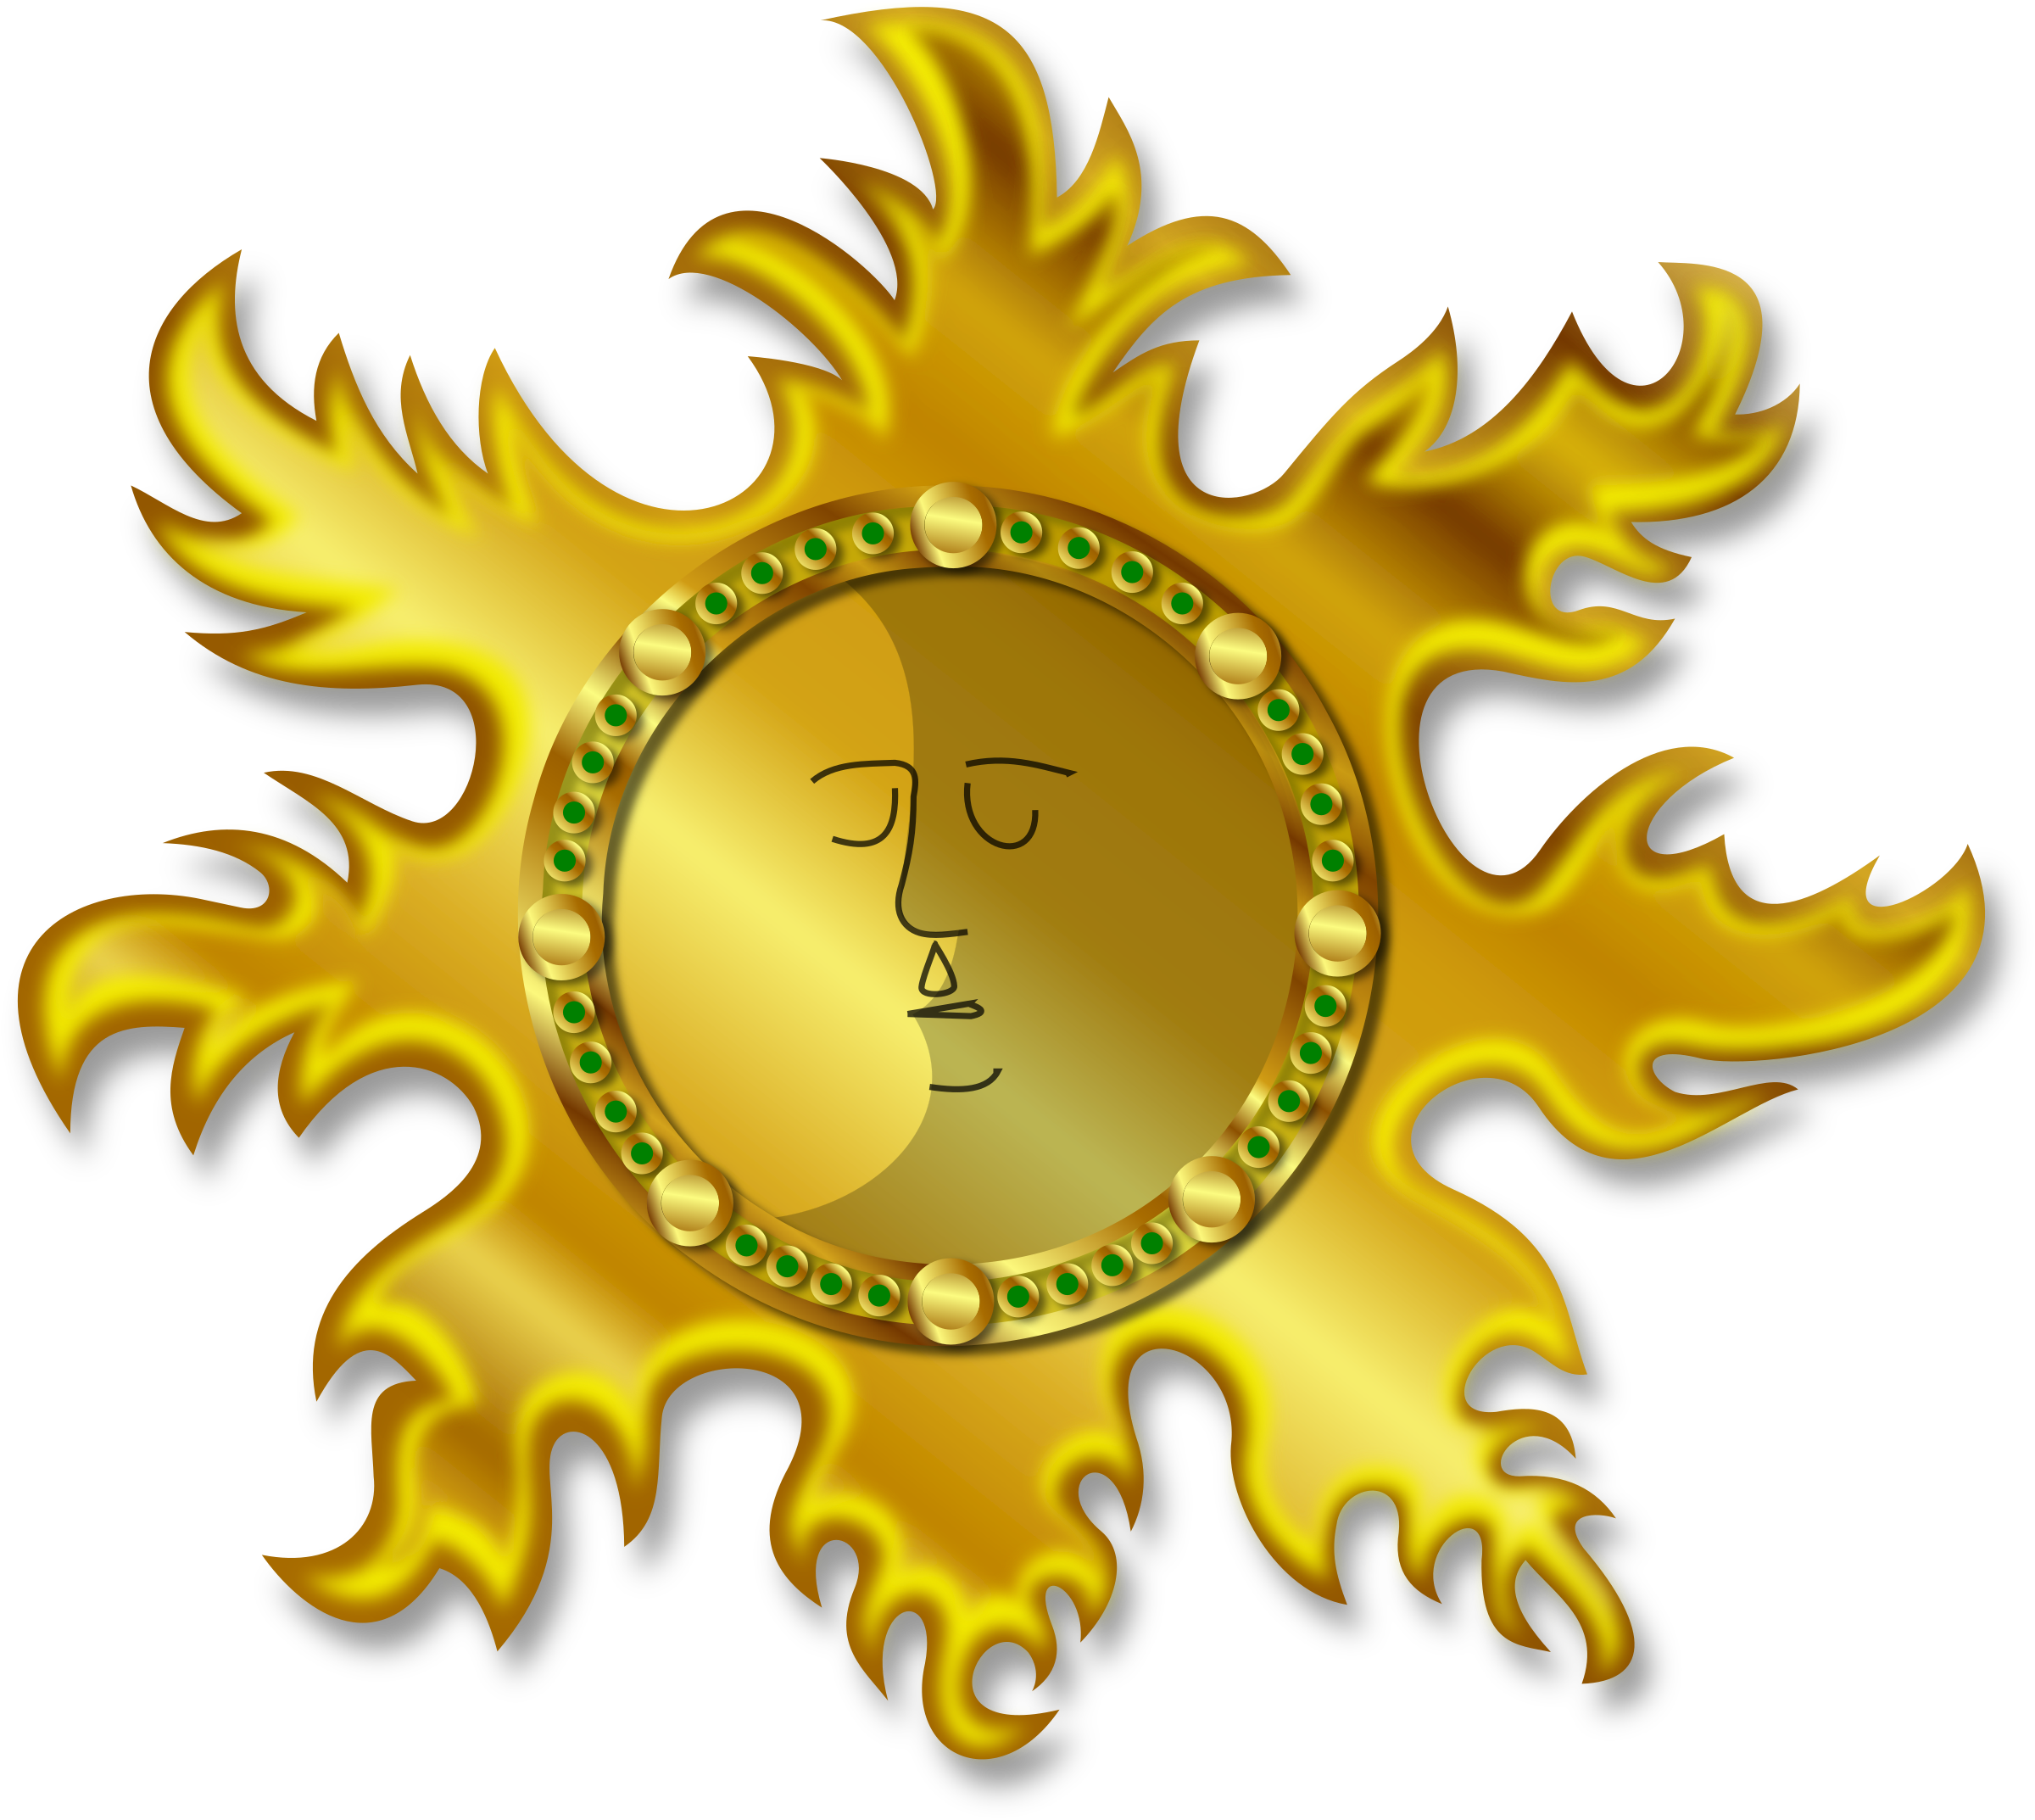 Sun and moon clipart image freeuse Clipart - Sun and Moon image freeuse